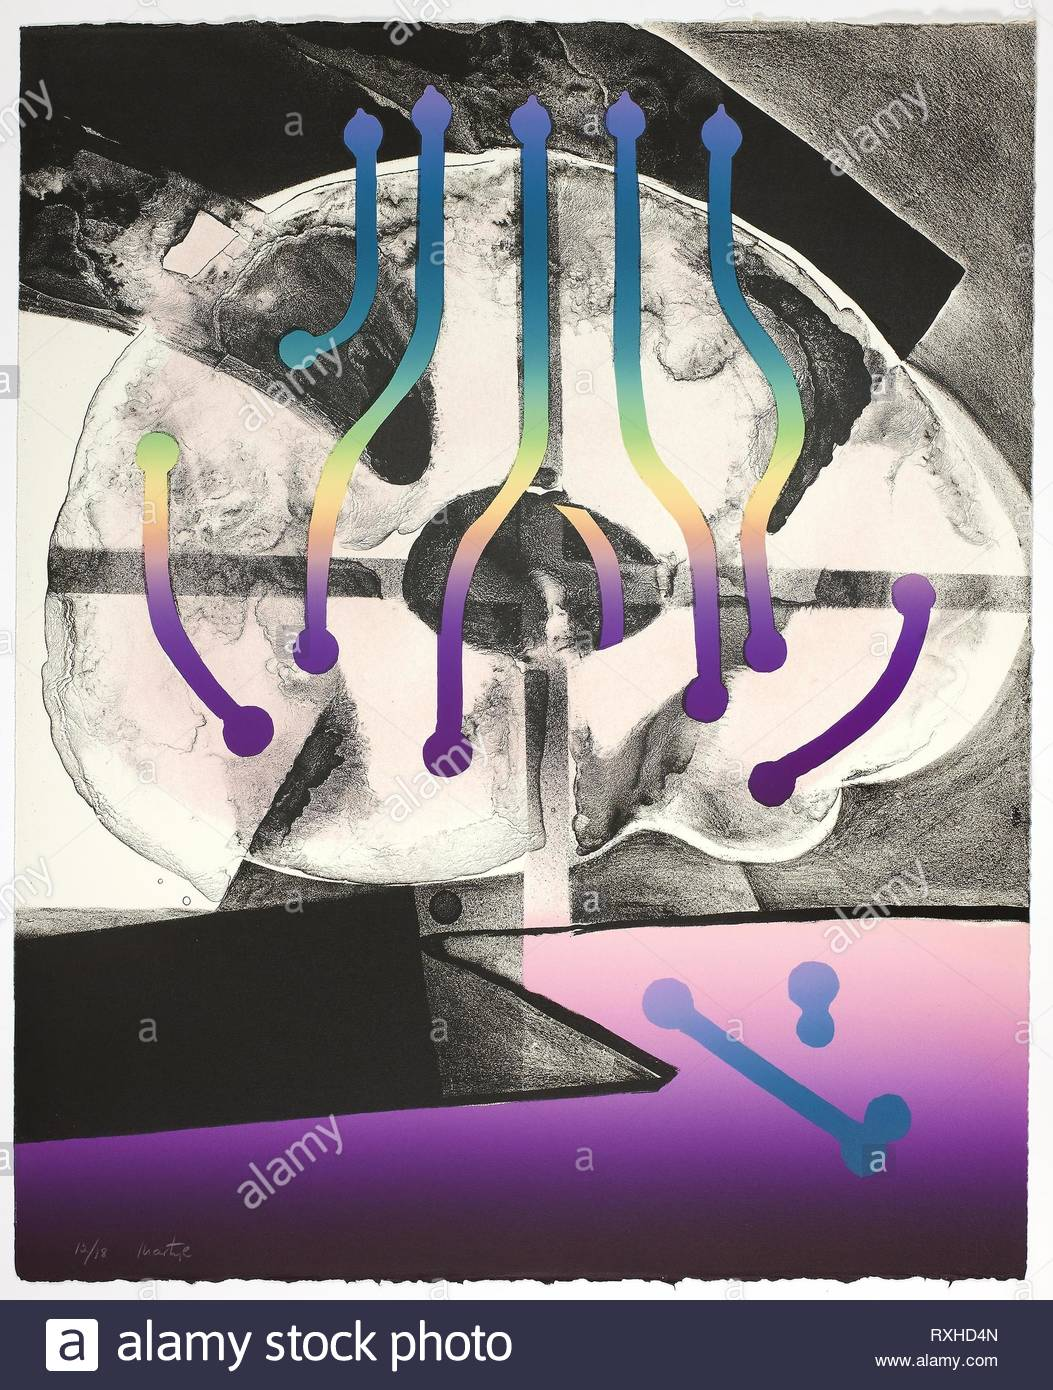 Plate Three, from Synapse Suite. Martyl; American, 1918-2013. Date: 1974. Dimensions: 560 x 455 mm. Color lithograph on paper. Origin: United States. Museum: The Chicago Art Institute. Author: Suzanne Martyl Langsdorf. - Stock Image